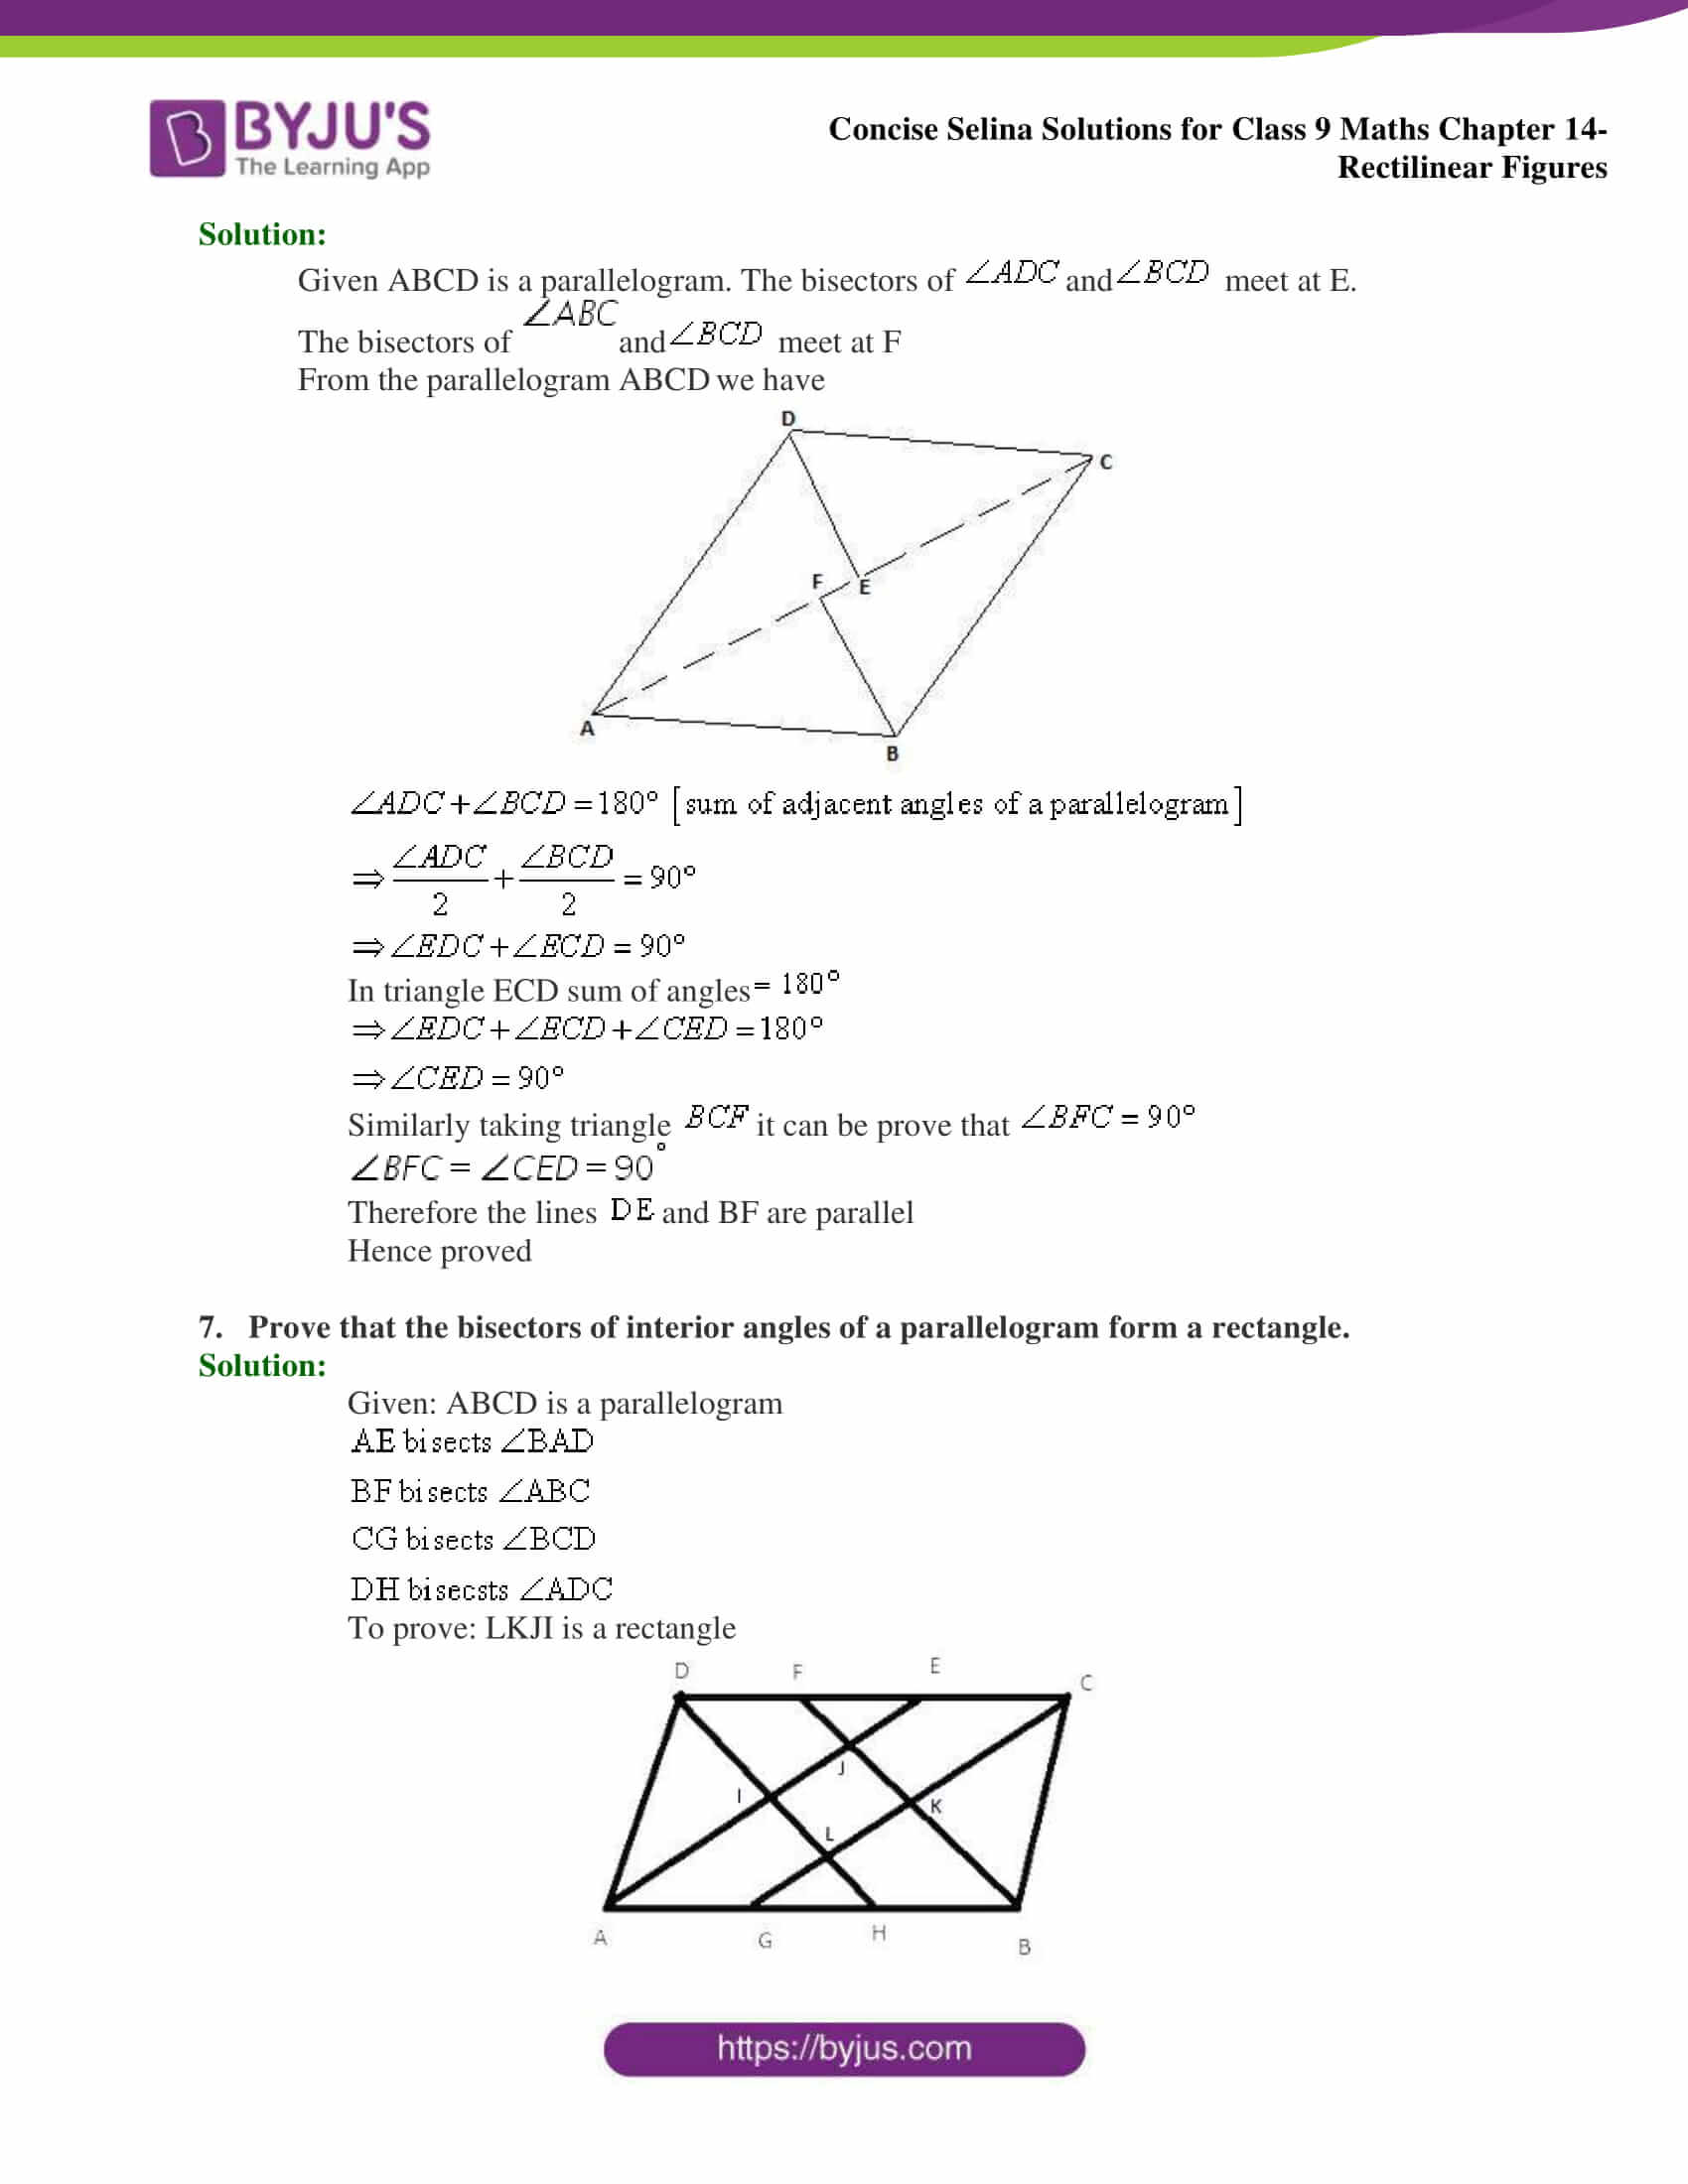 selina Solutions for Class 9 Maths Chapter 14 part 22